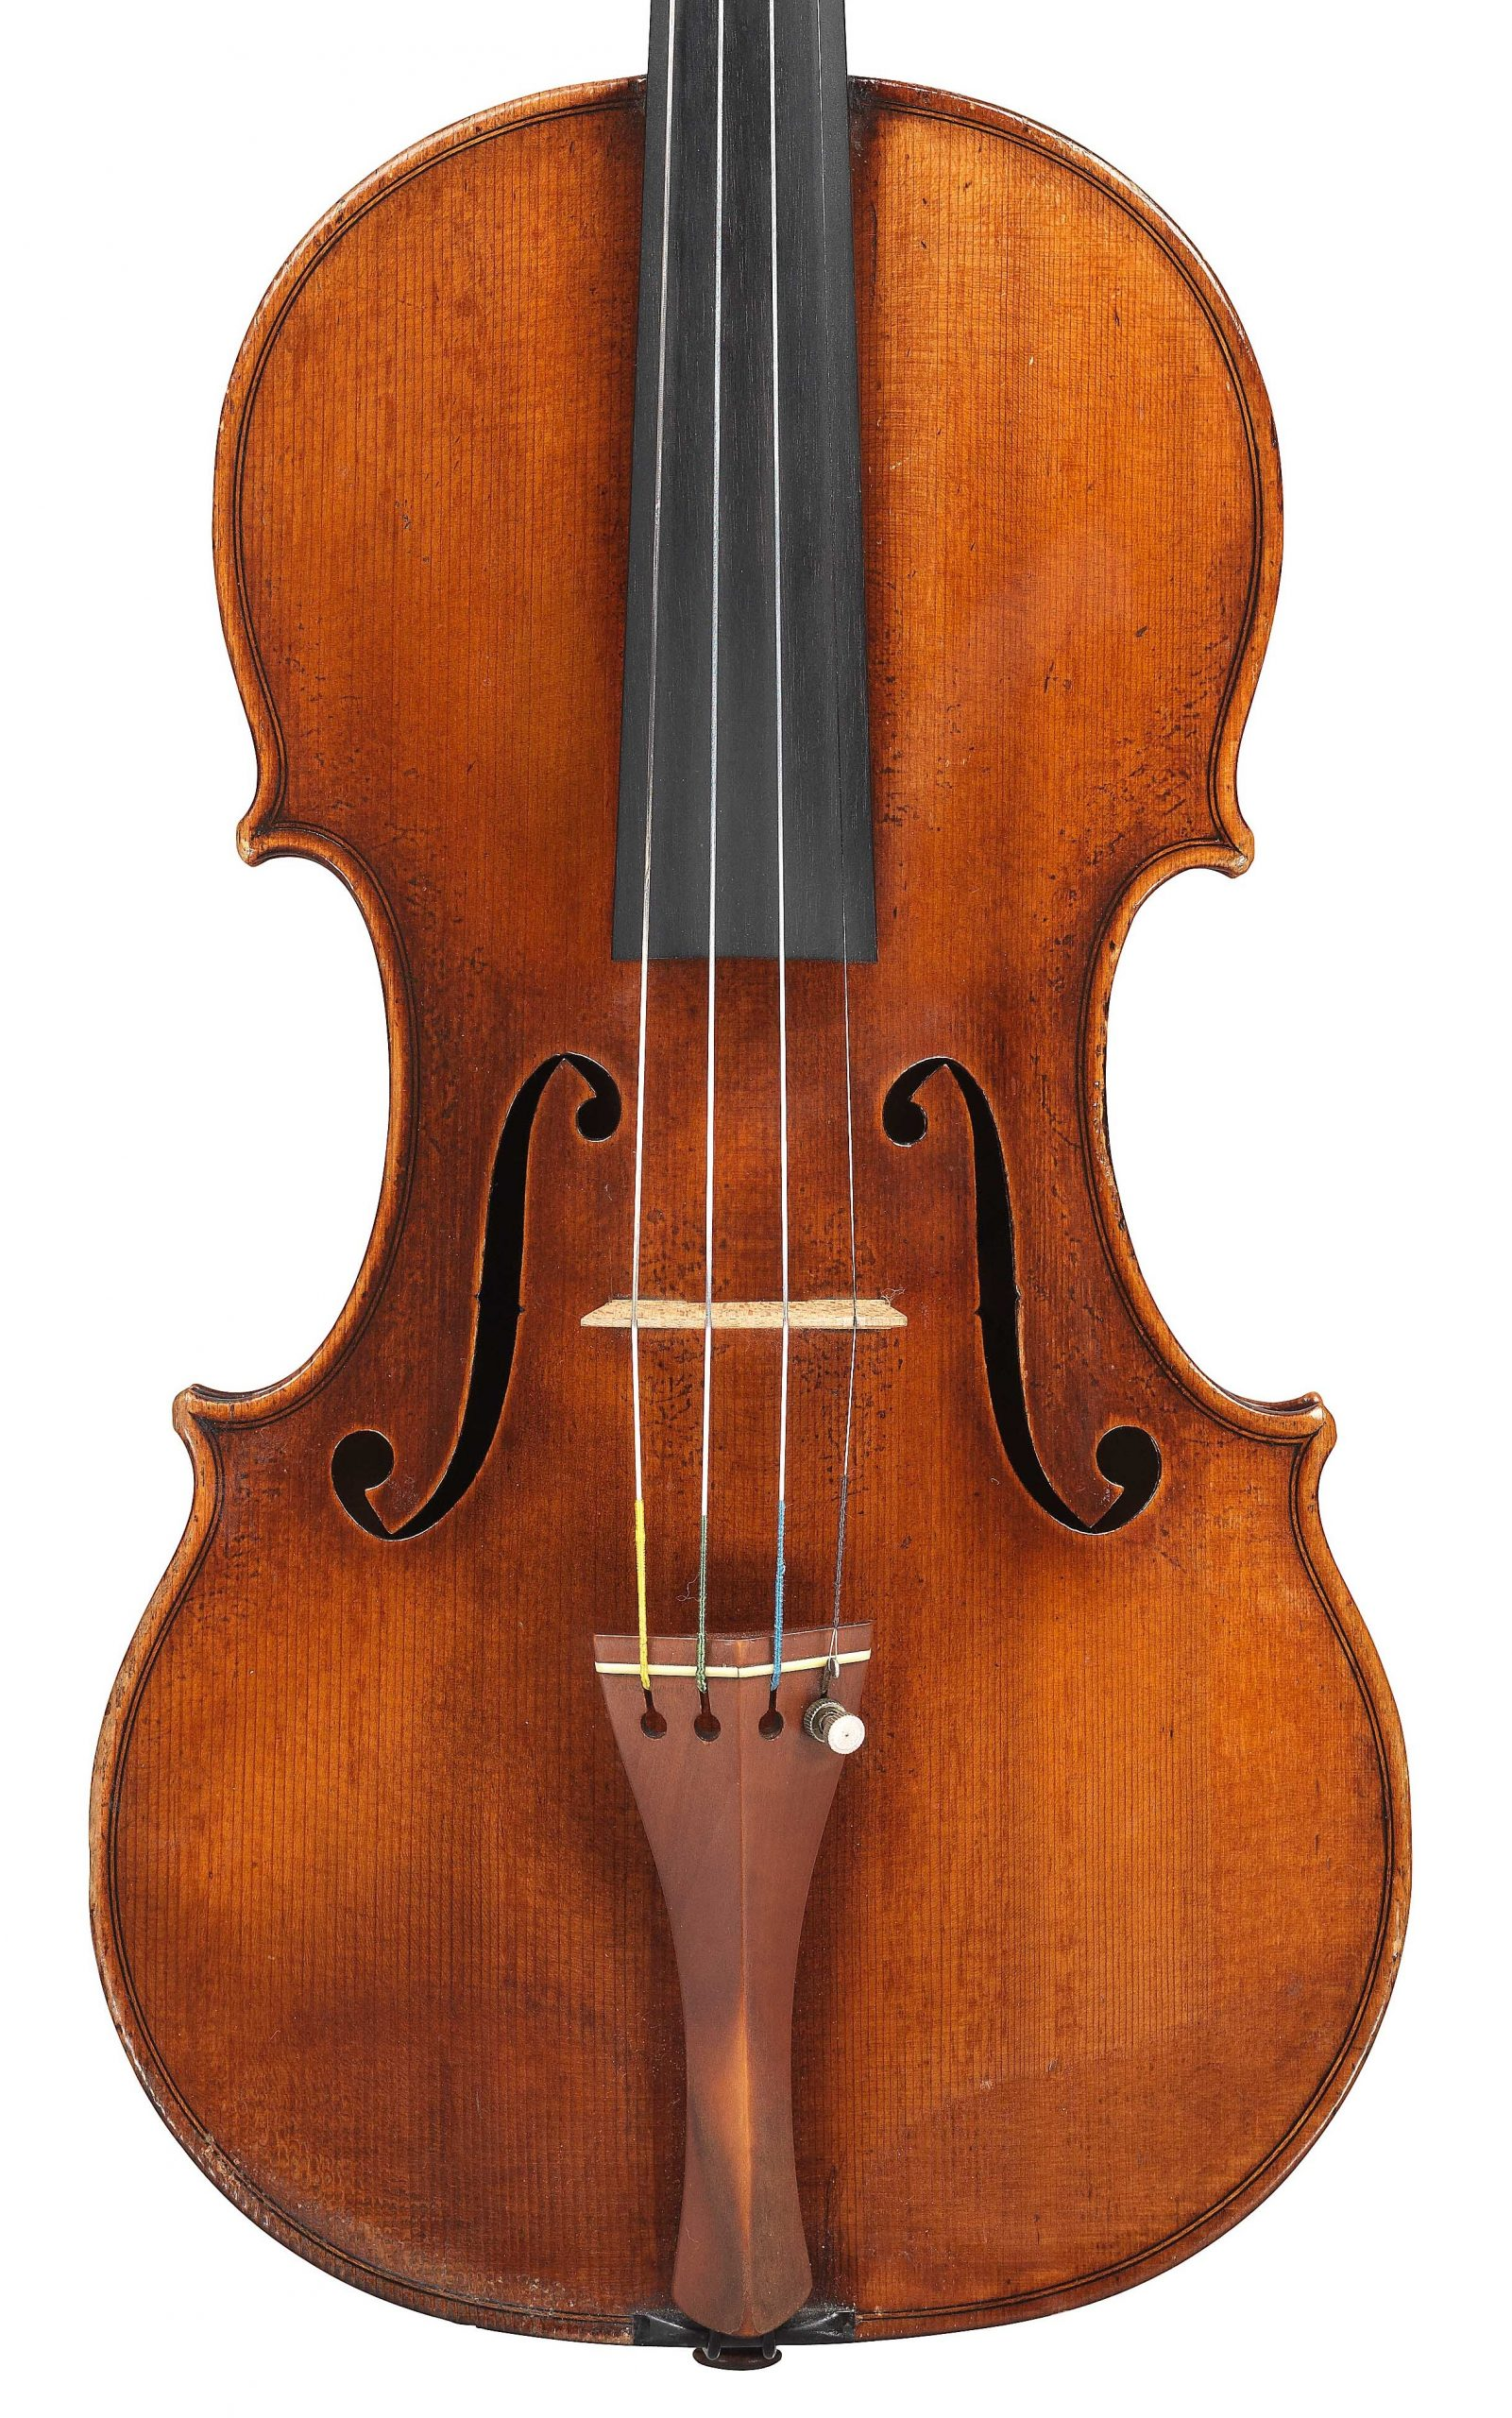 Front of violin by JB Vuillaume, ex-Robertson, dated 1870, exhibited by Ingles & Hayday at Sotheby's in 2012